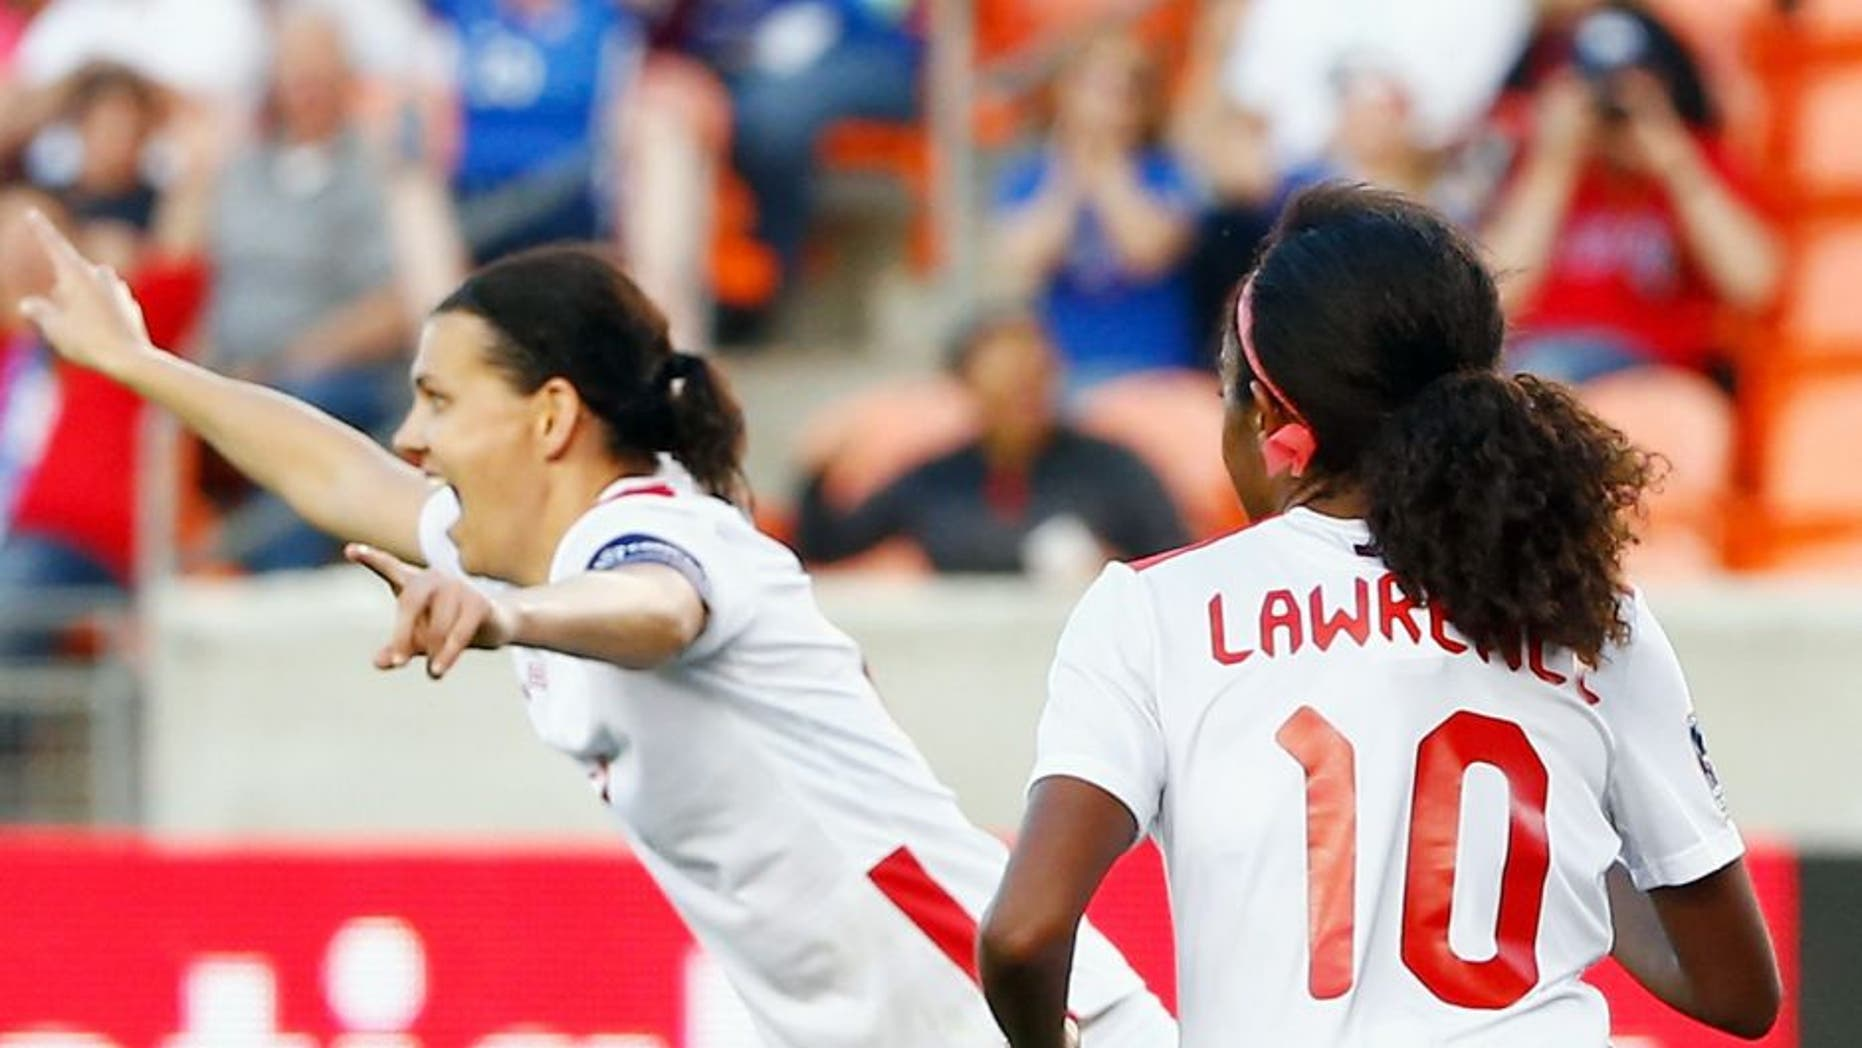 HOUSTON, TX - FEBRUARY 19: Christine Sinclair #12 of Canada celebrates after scoring a second half goal against Costa Rica during the Semifinal of the 2016 CONCACAF Women's Olympic Qualifying at BBVA Compass Stadium on February 19, 2016 in Houston, Texas. (Photo by Scott Halleran/Getty Images)